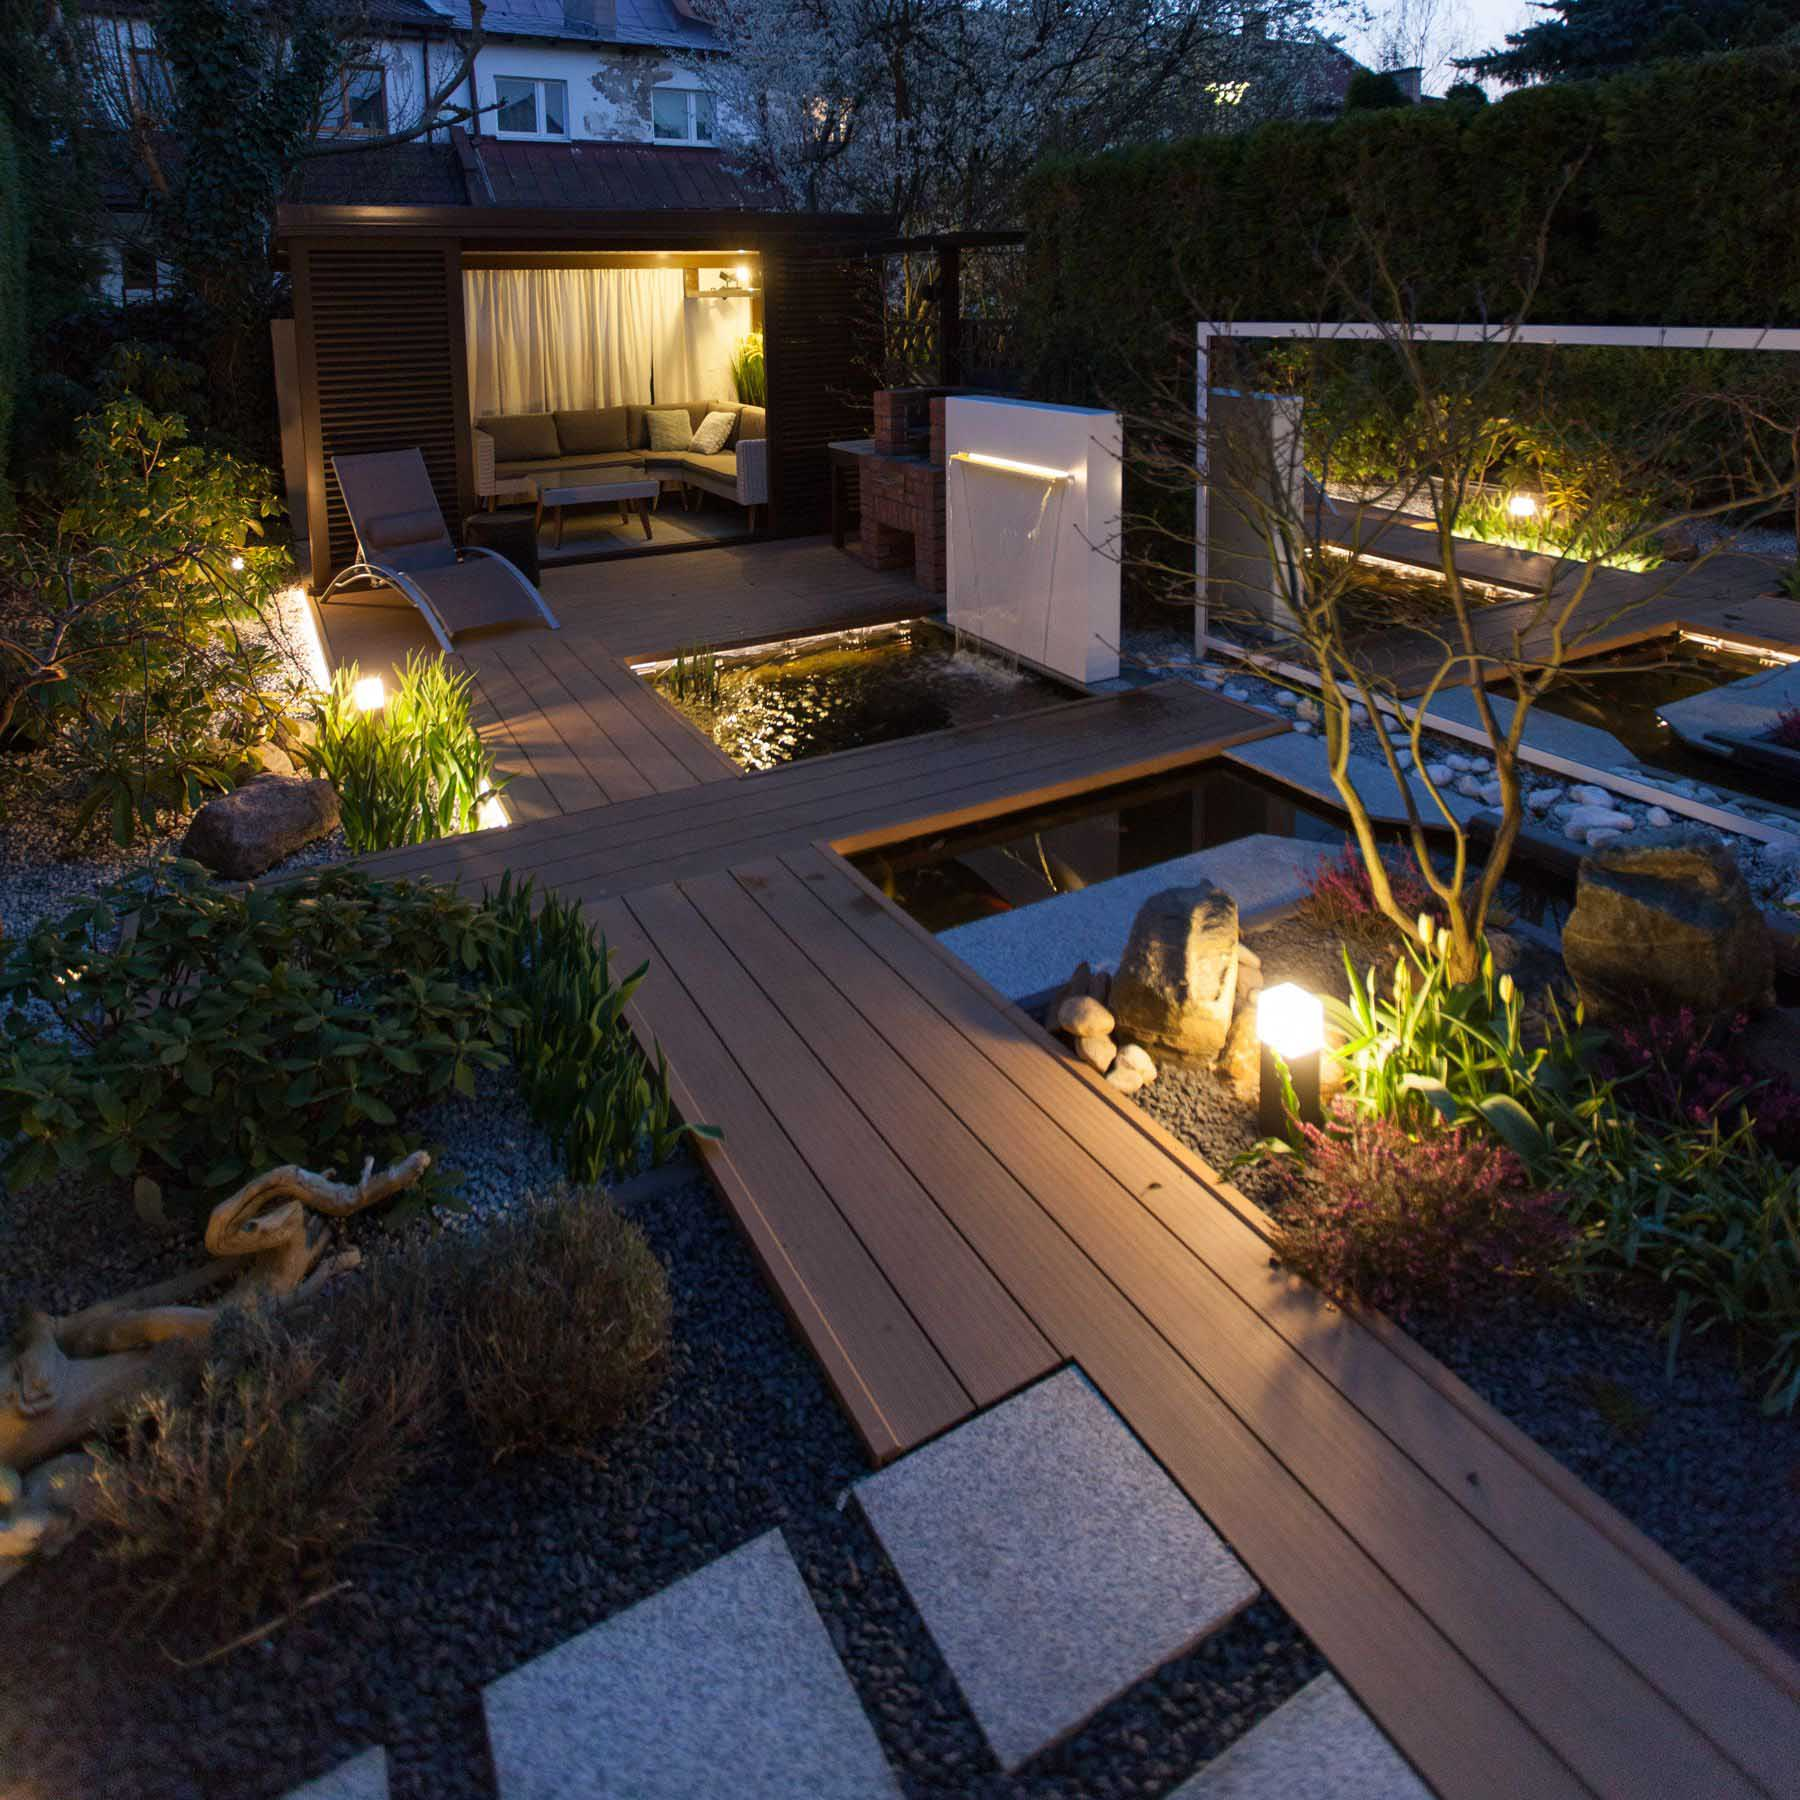 A modern backyard with wood pathways, water features, and a small covered living space.